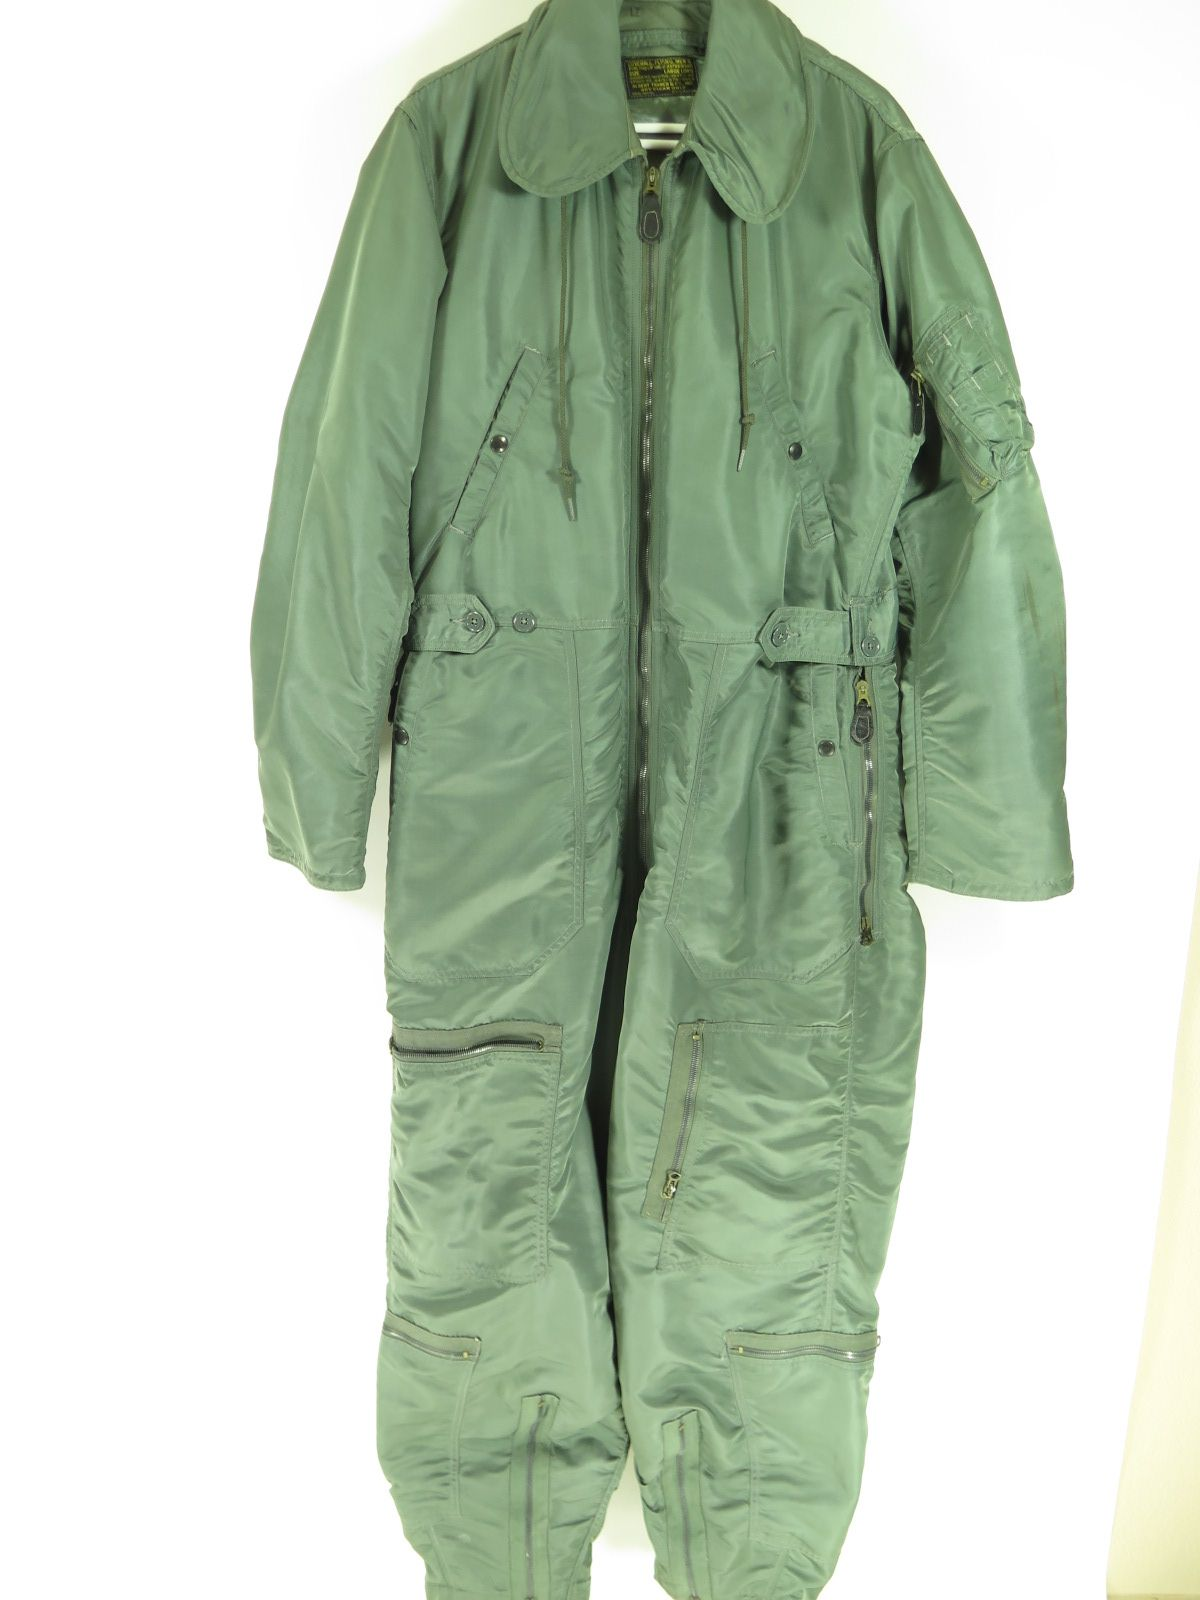 vintage 70s cwu 1 p flight suit coveralls green by